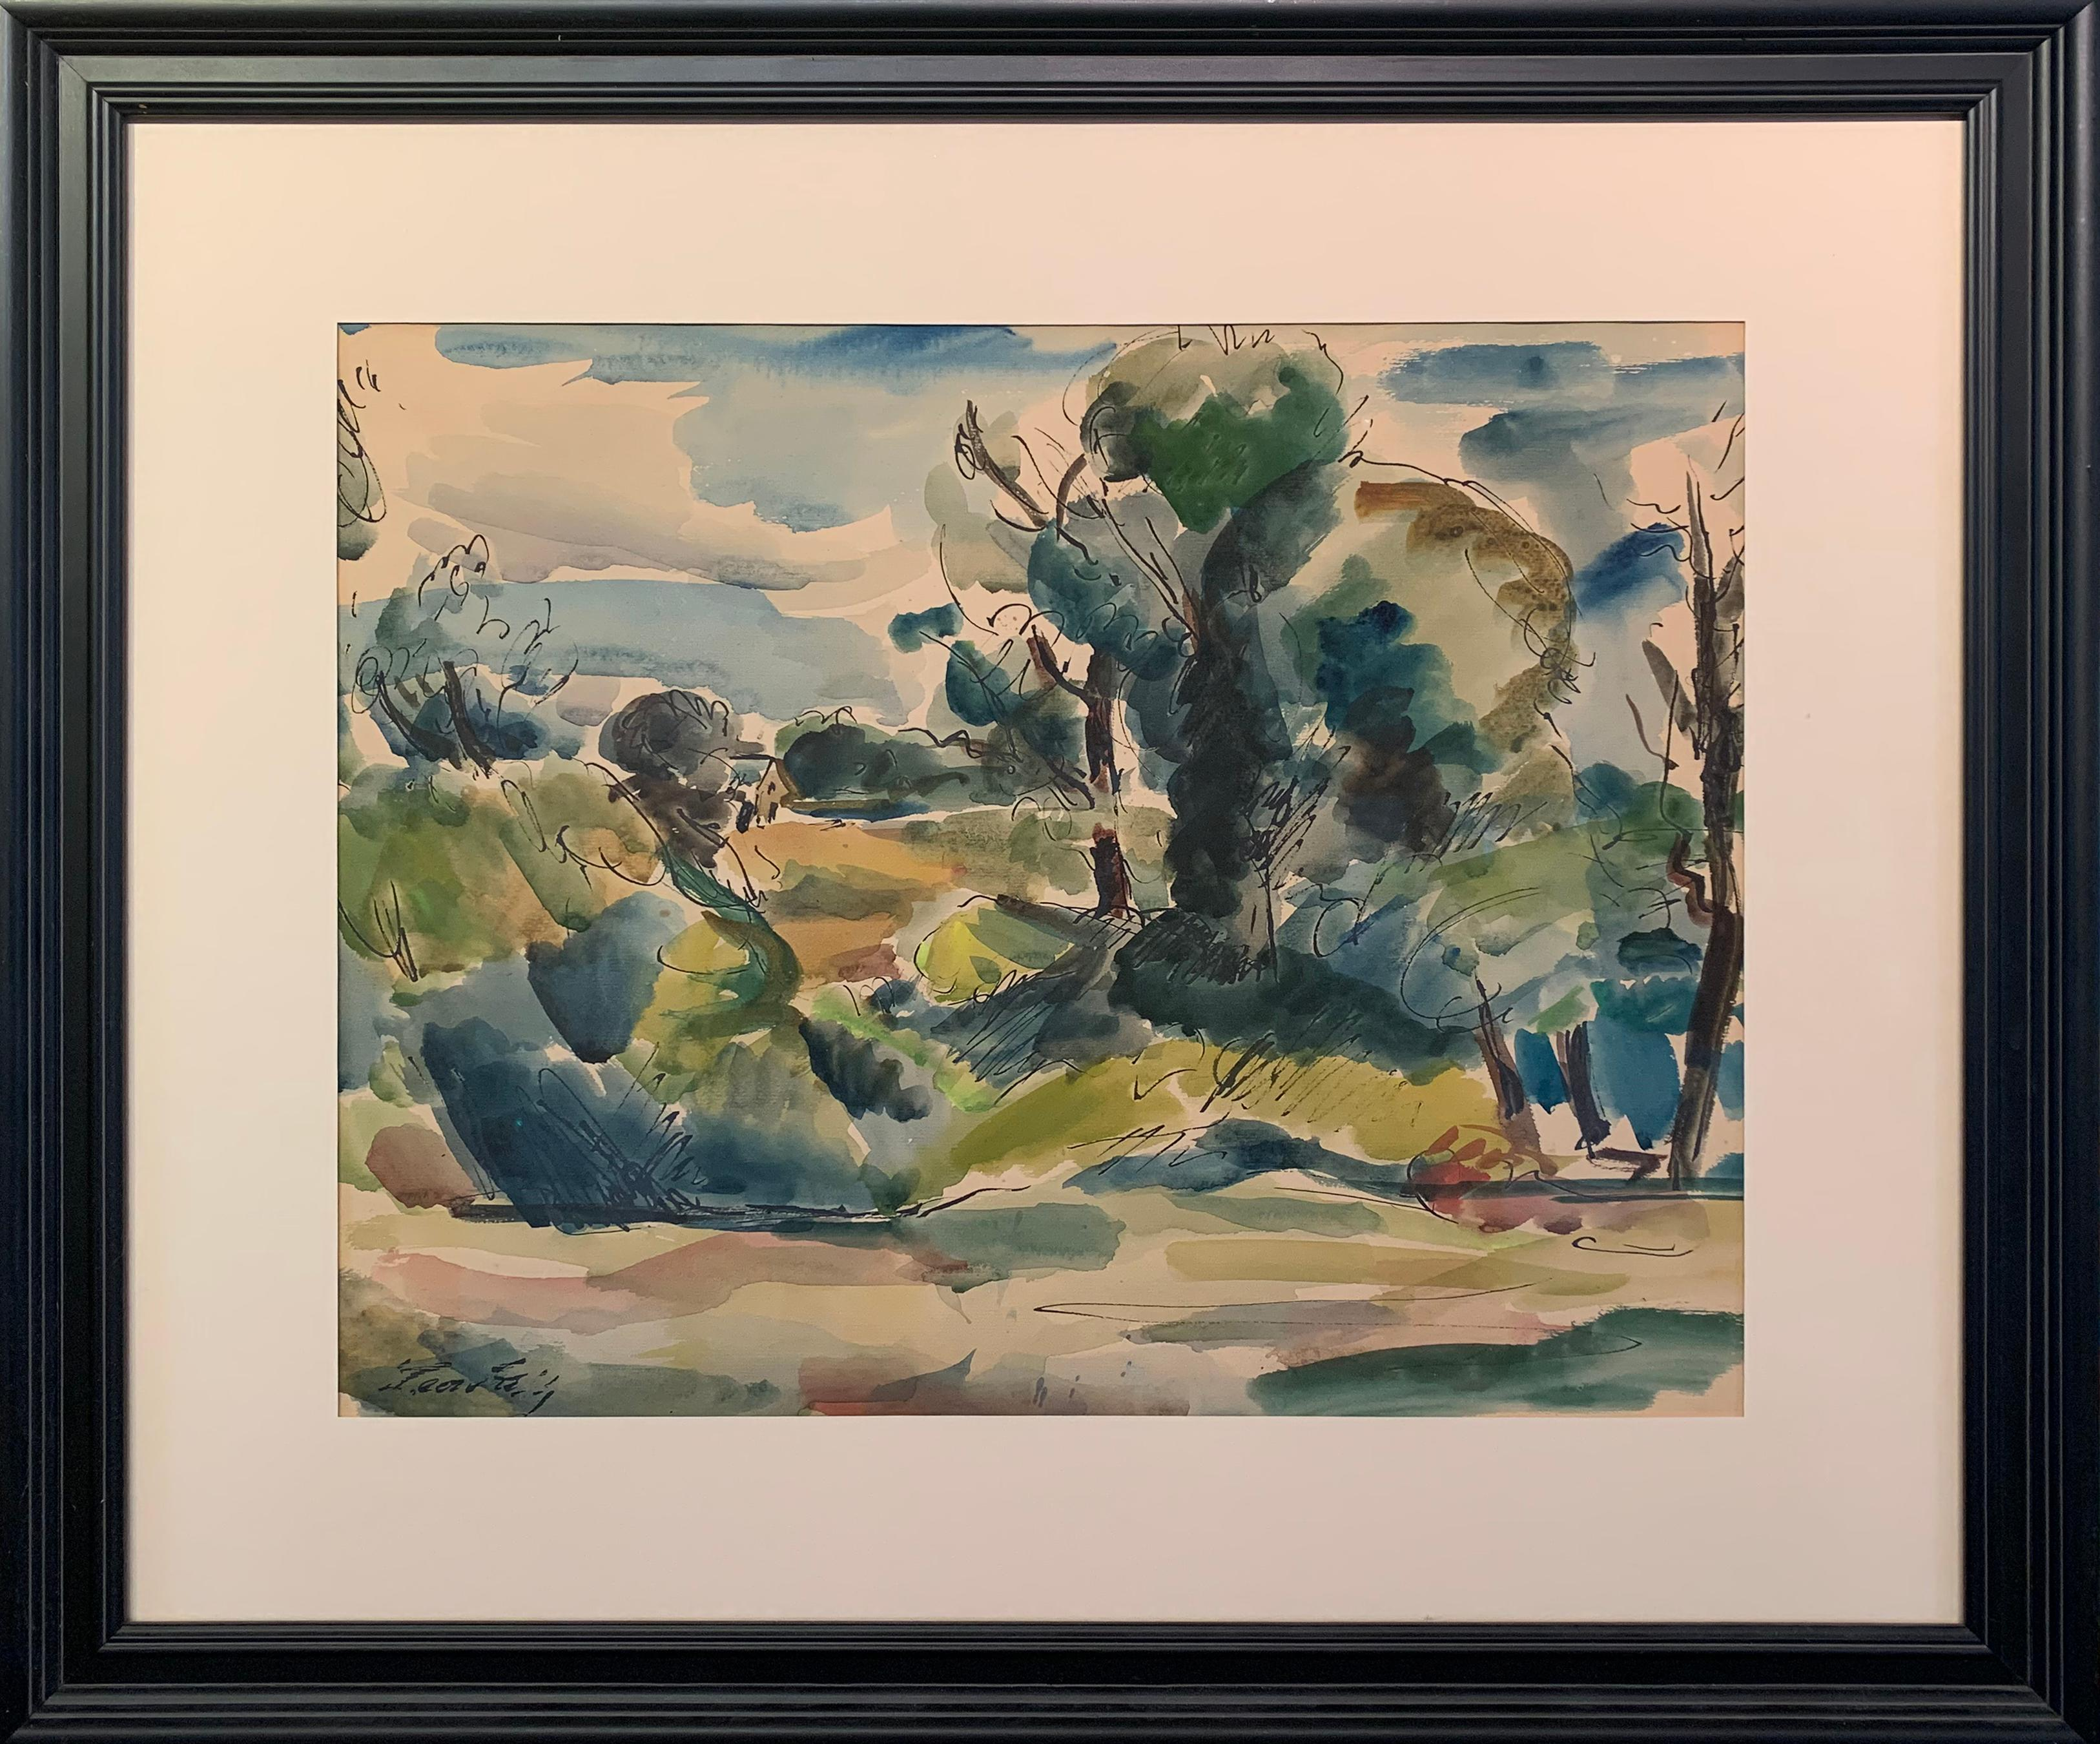 Green Landscape, Watercolor and Ink on Paper, circa 1926